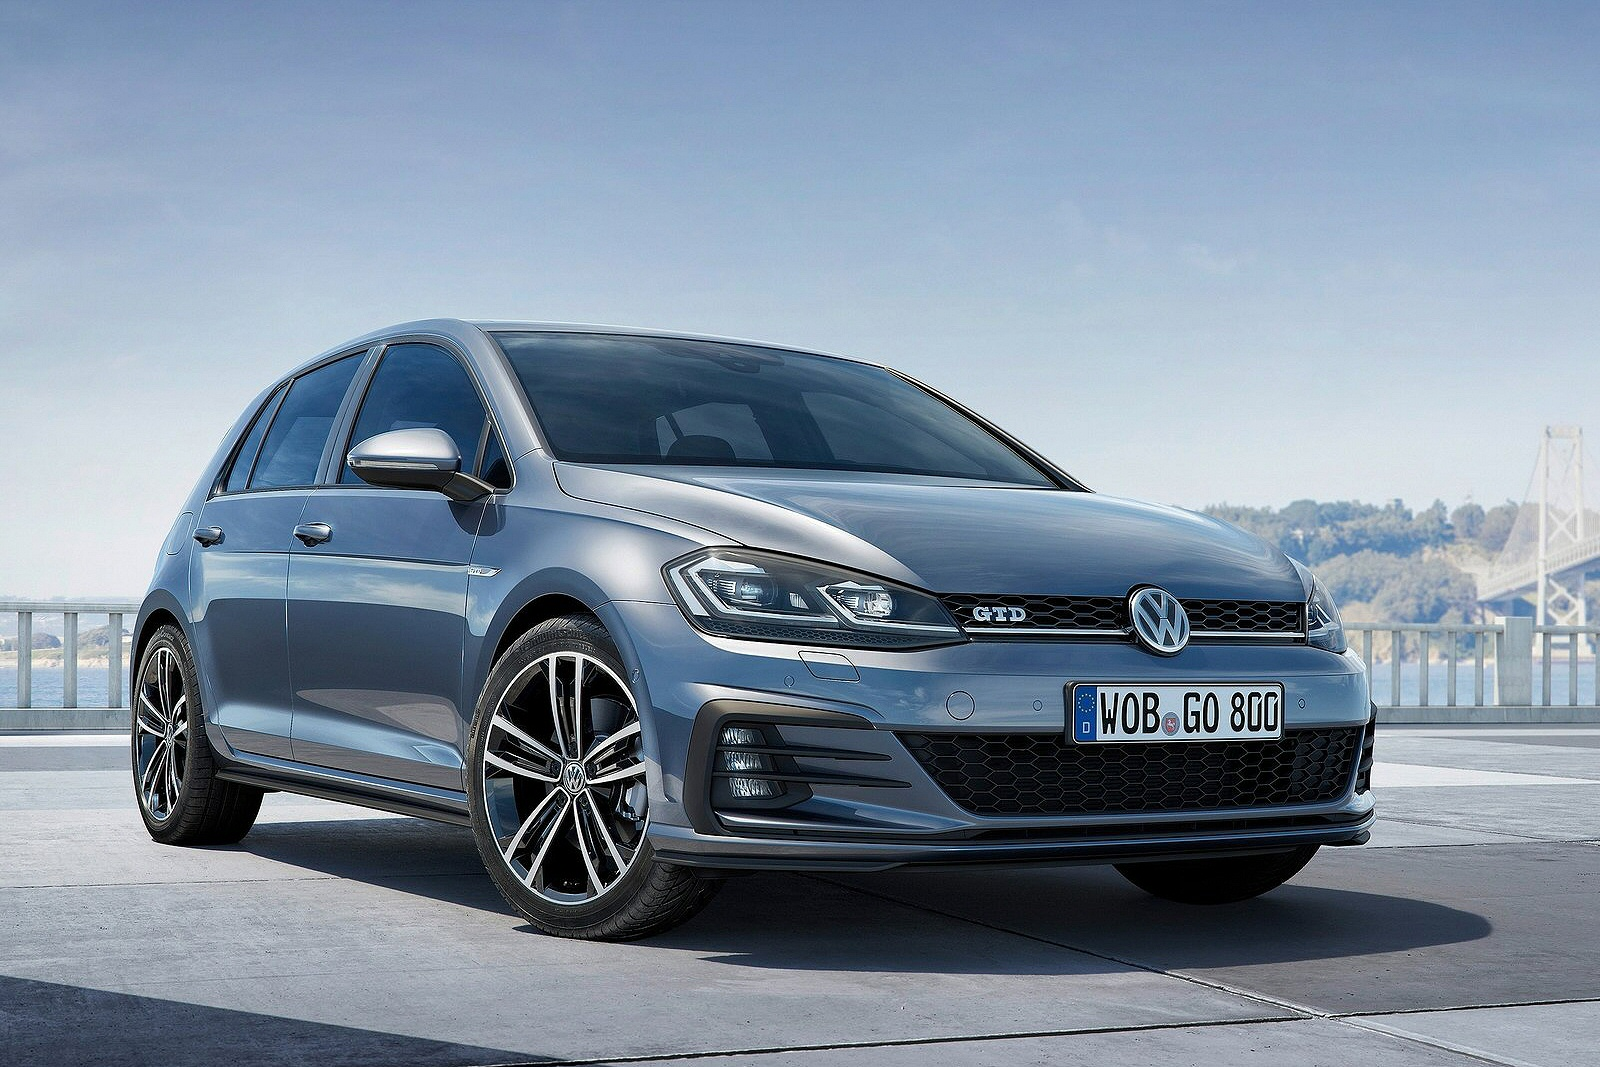 only the manual gearboxes but also the dsg twin clutch units all new golf models both diesel and petrol come with a stop start system as standard